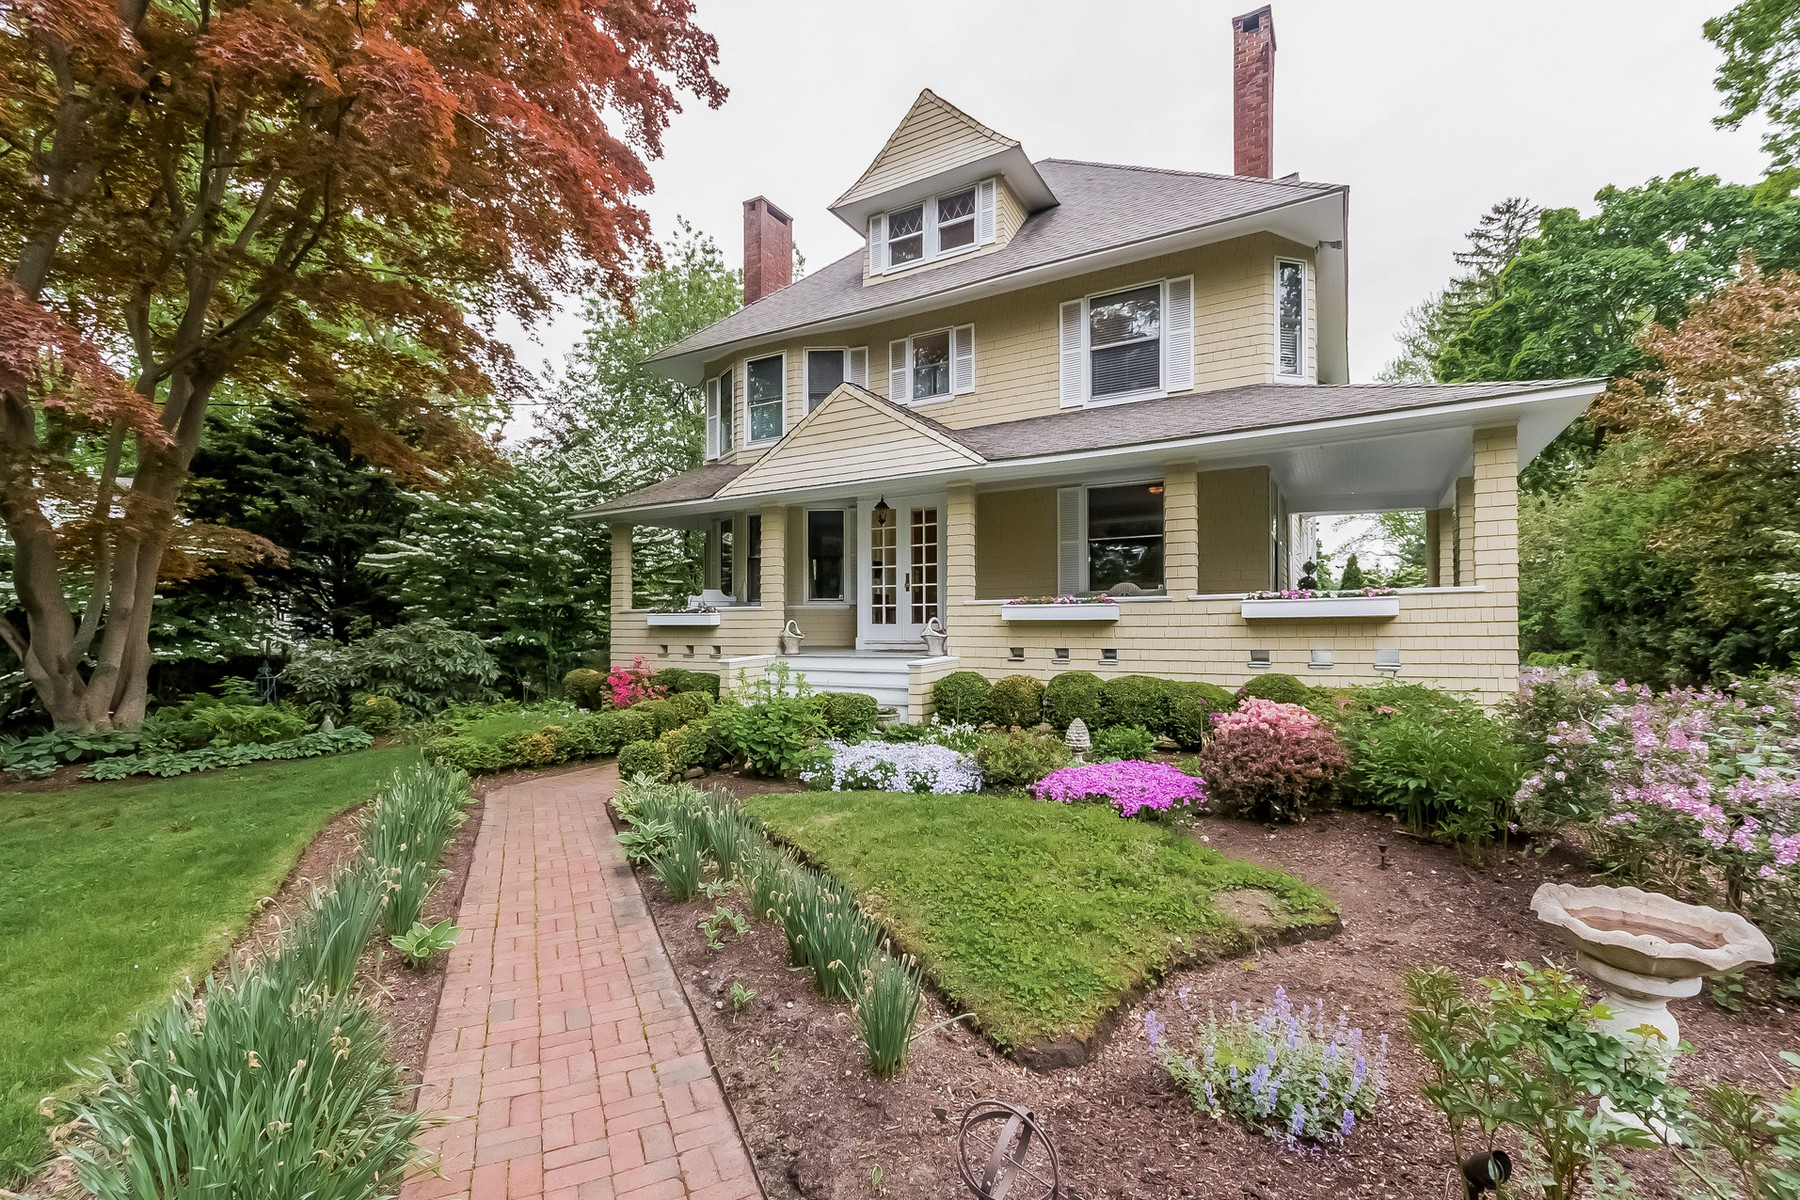 Single Family Home for Sale at Craftsman Style Colonial with Character Plus Modern Amenities 720 Old Post Road Fairfield, Connecticut 06824 United States